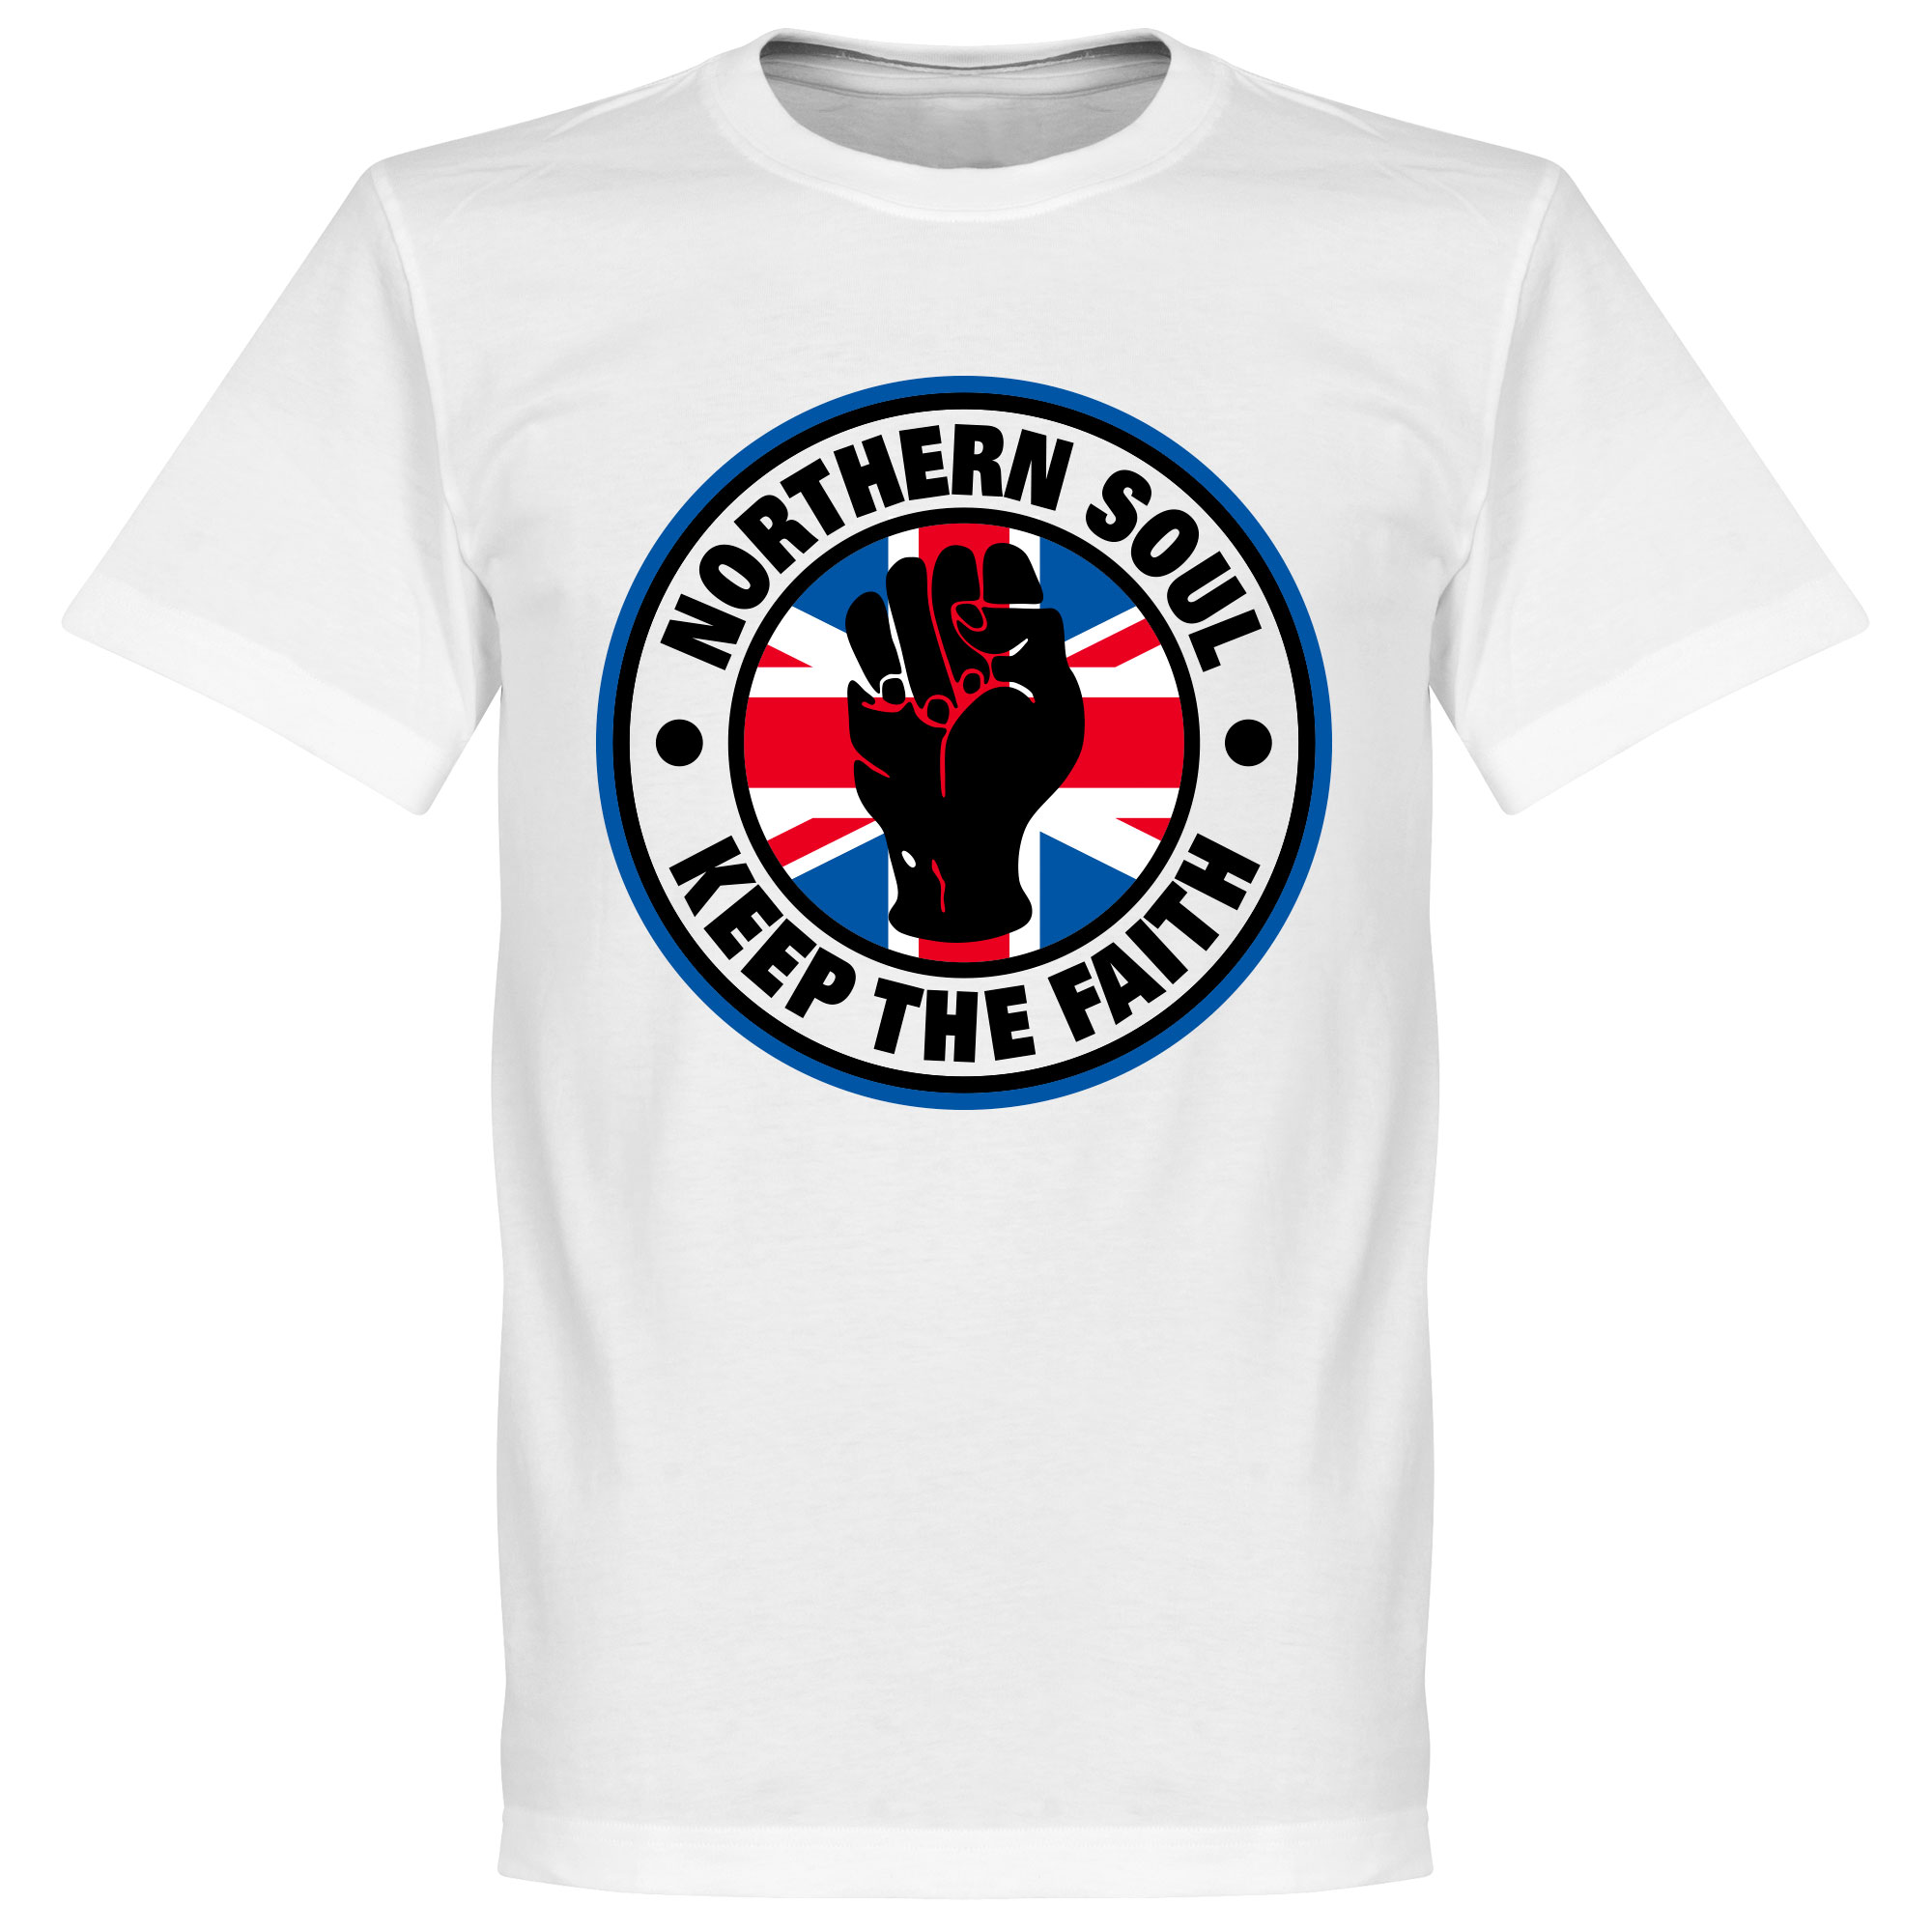 Northern Soul Union Flag Tee - White - L